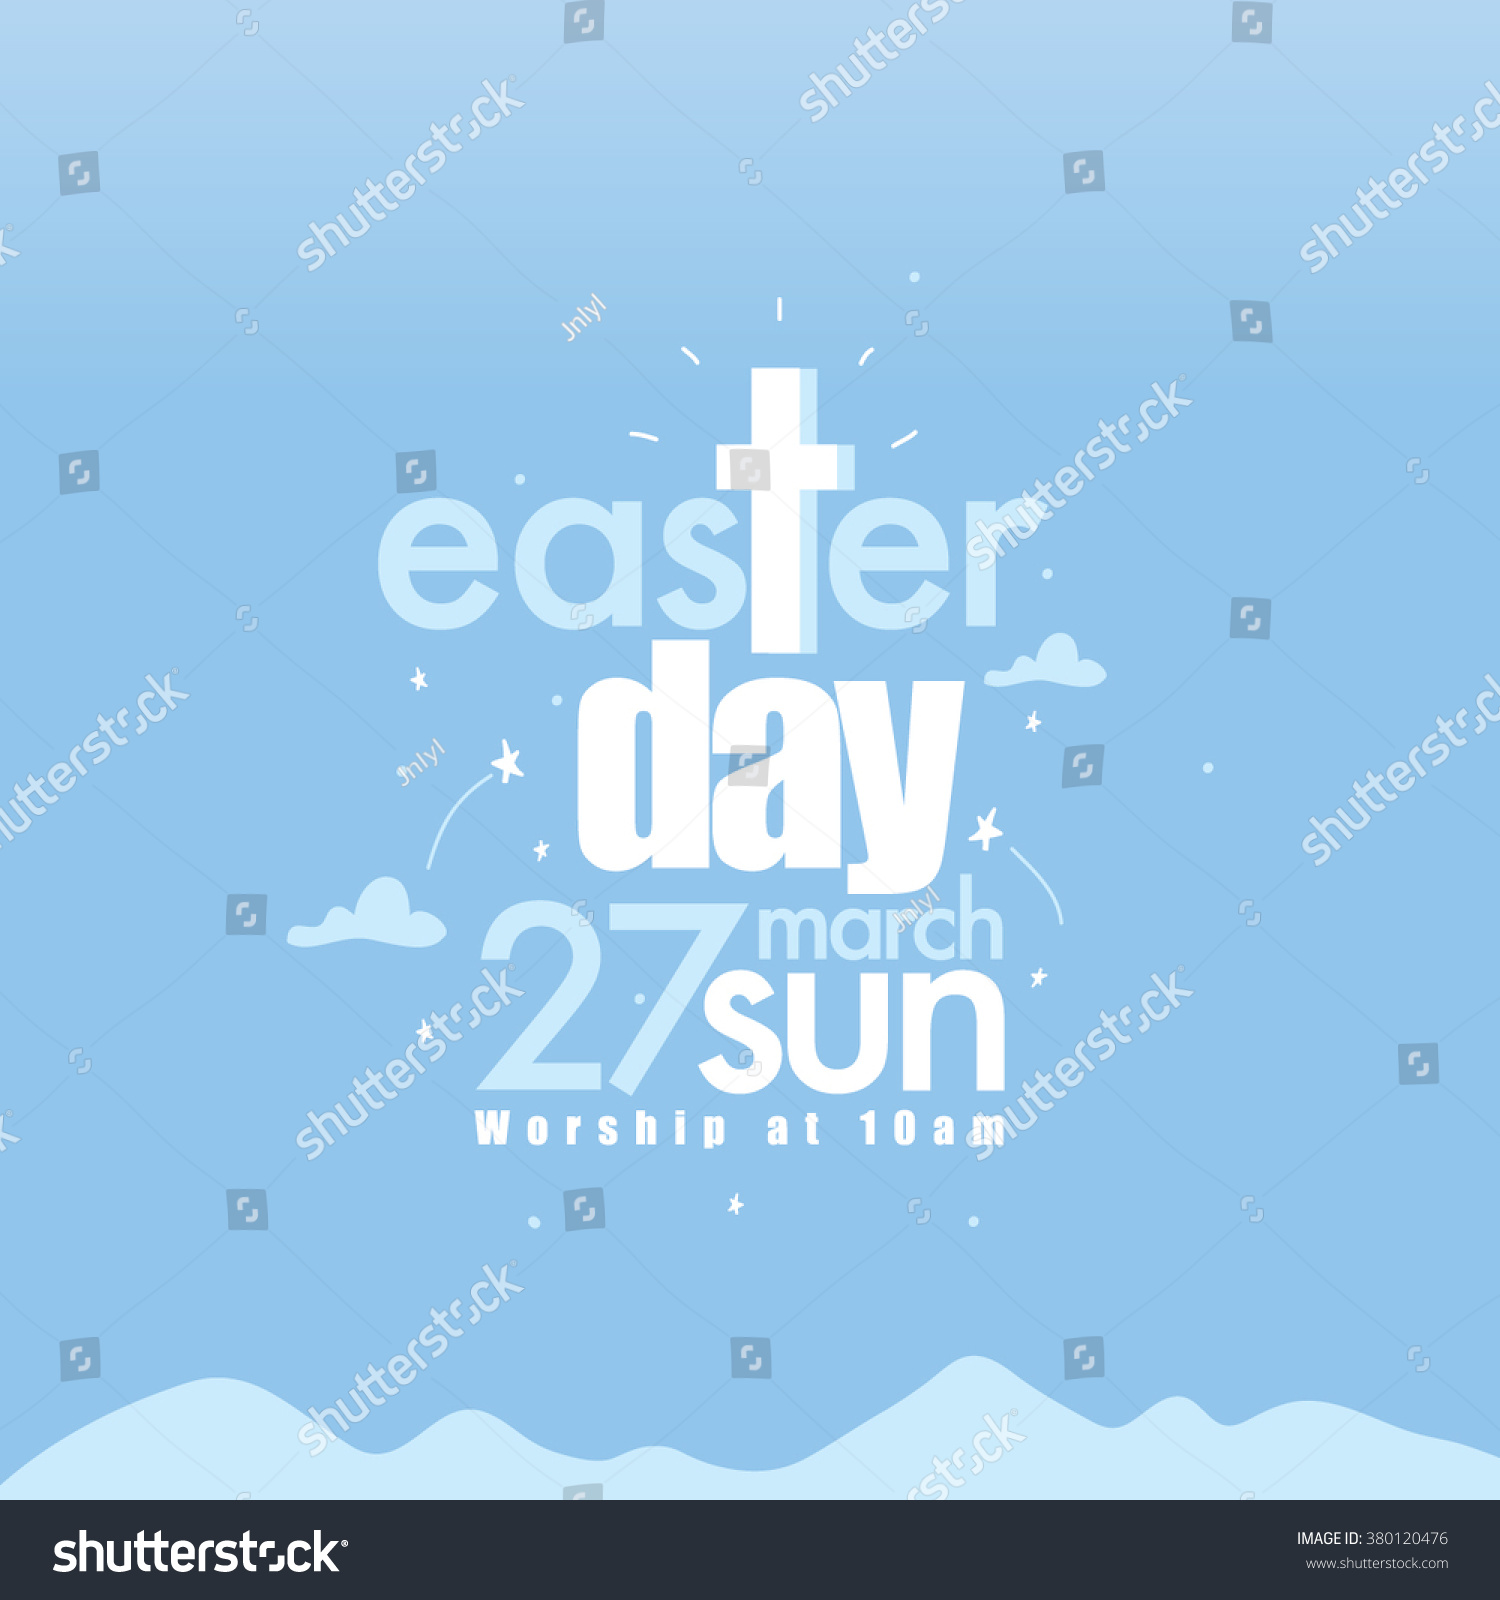 Happy Easter Day Greetings Church Poster Stock Vector 380120476